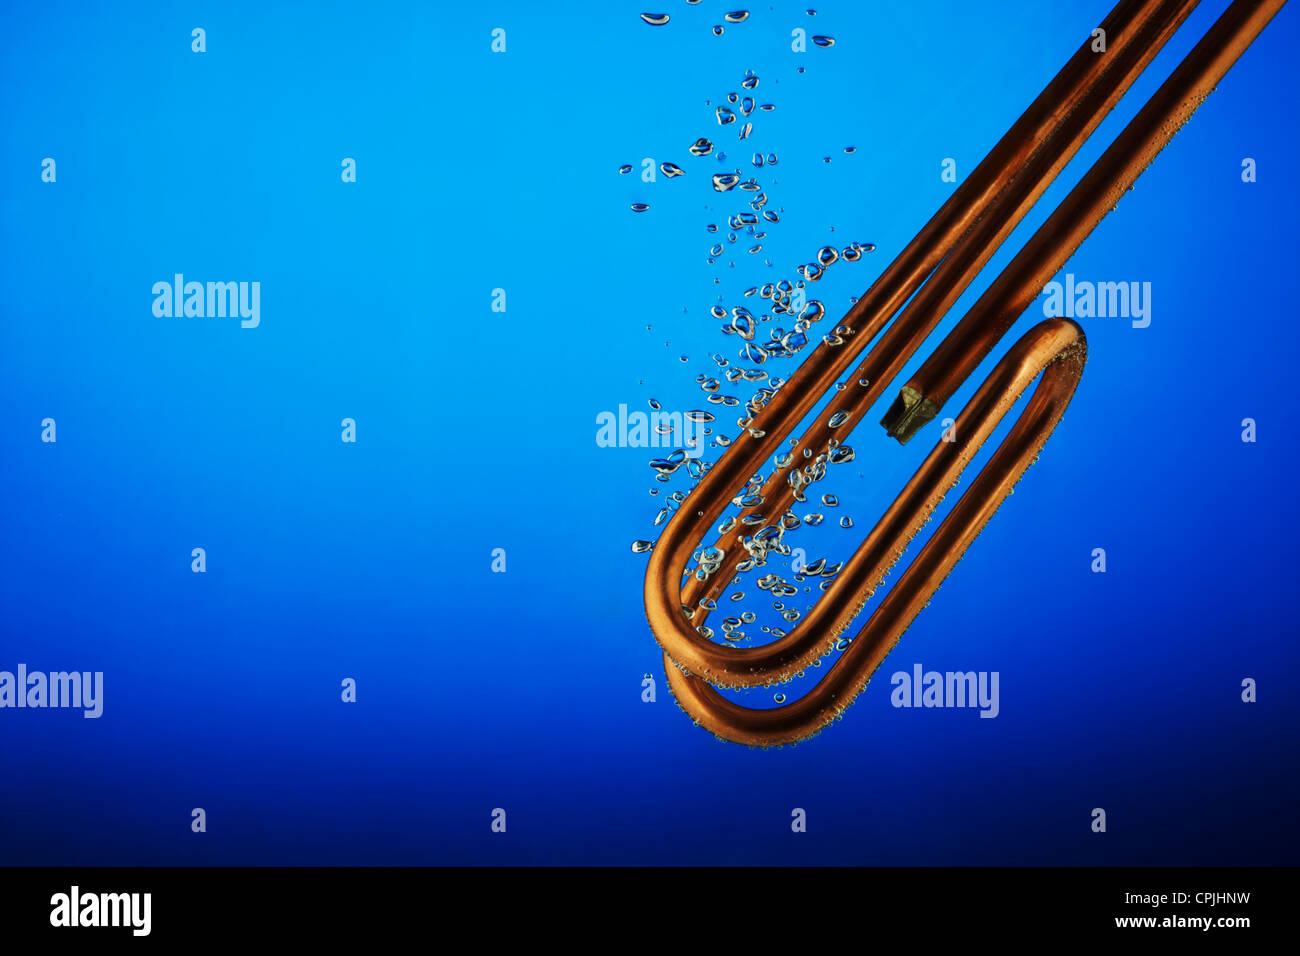 Plumbing Water Heater Stockfotos & Plumbing Water Heater Bilder - Alamy